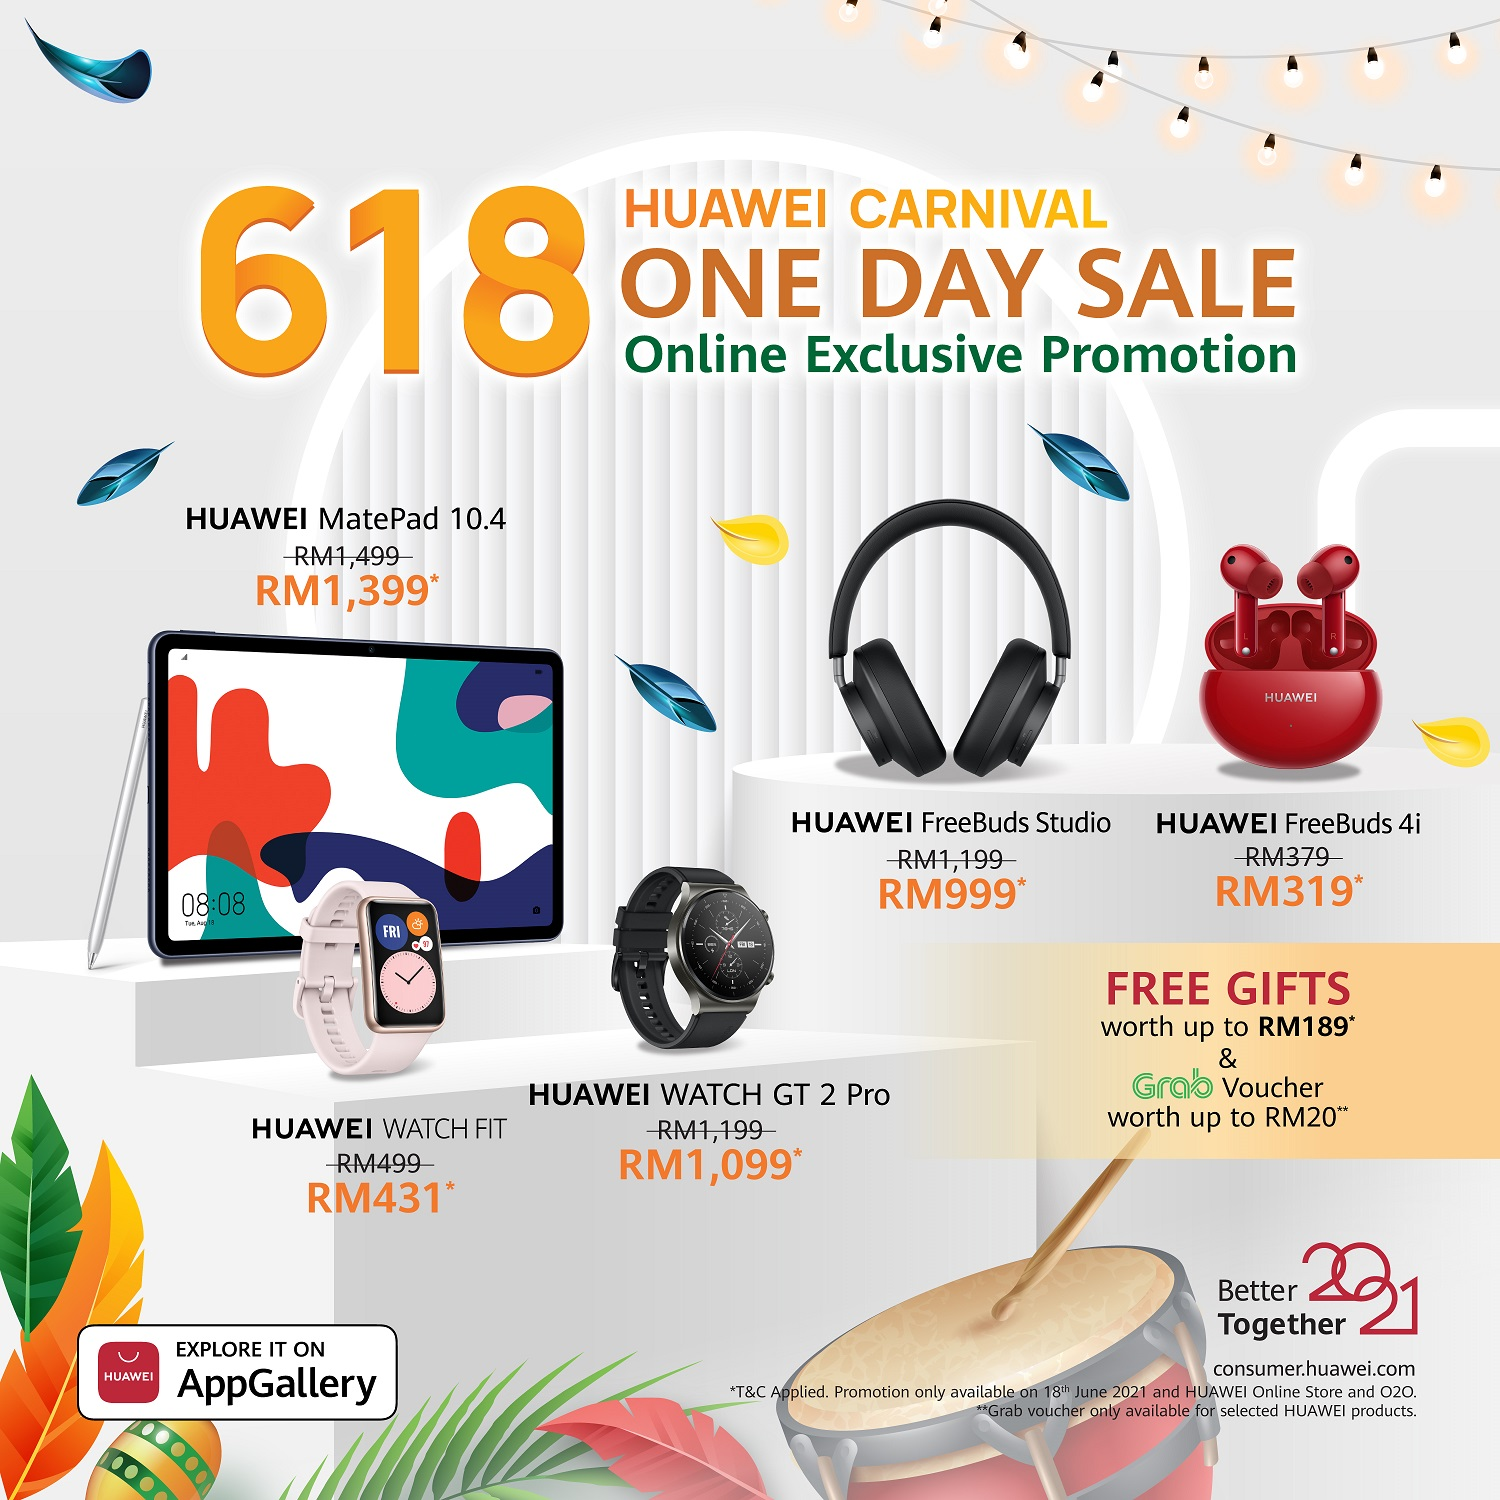 Enjoy Discounts and FREE Gifts Worth Up To RM189 At HUAWEI Carnival 2021